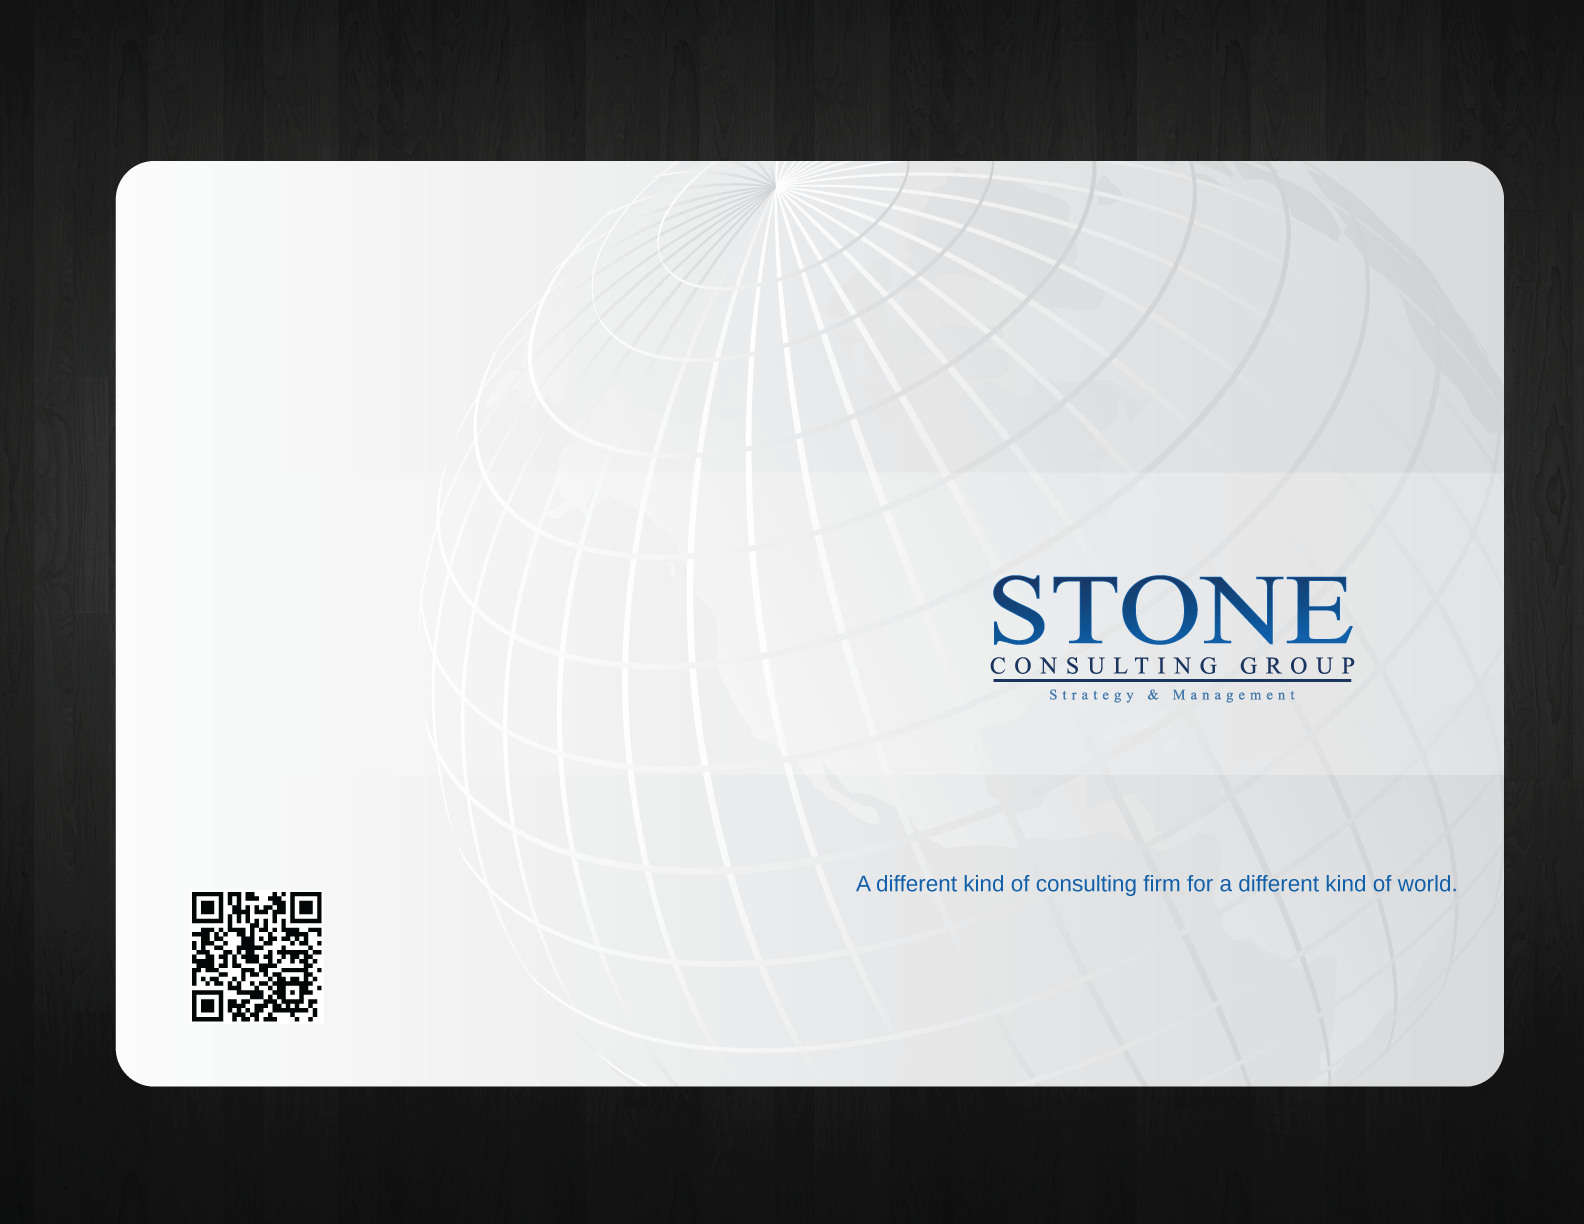 Help Stone Consulting Group with a new print or packaging design